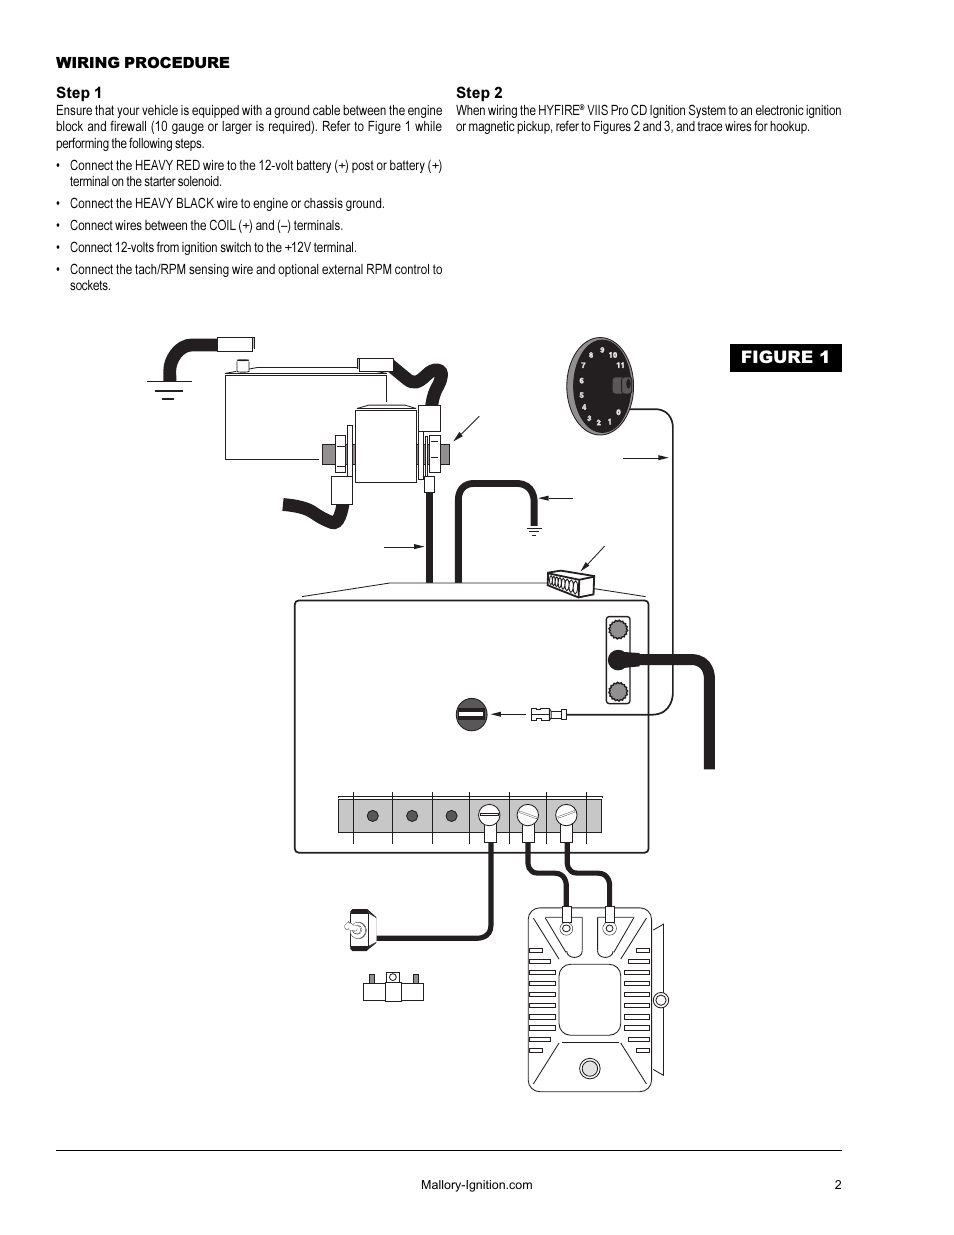 Mallory Ignition Tach Wiring Diagram   Best Wiring Liry on tel tach ii, tel tac oval track pro, tel tac 2 troubleshooting,